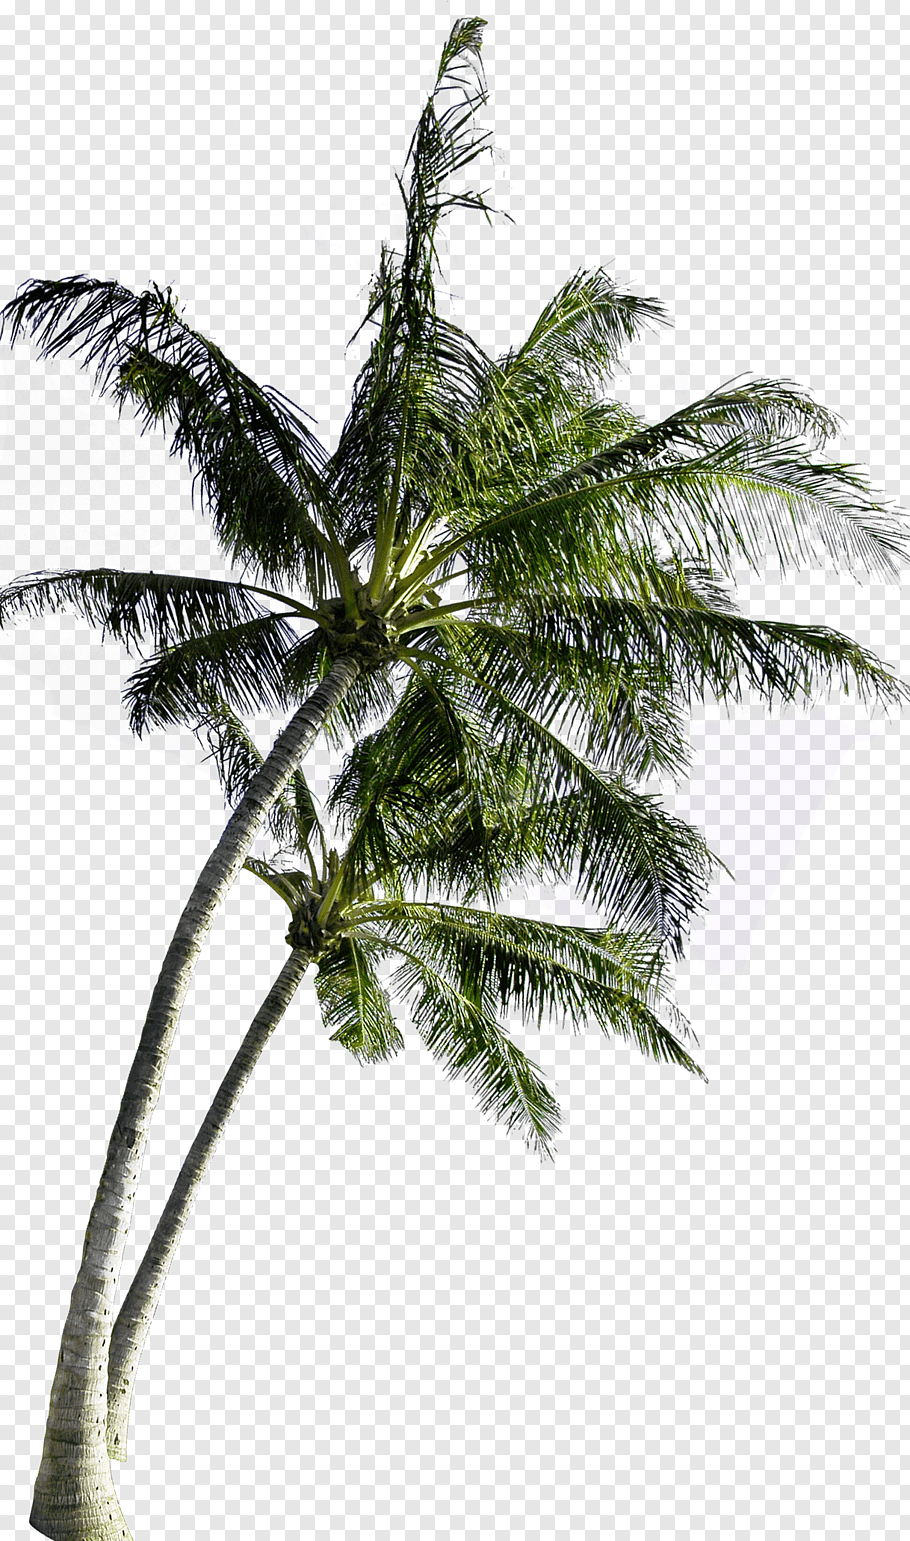 Coconut trees, Coconut Tree Computer file, coconut tree free.